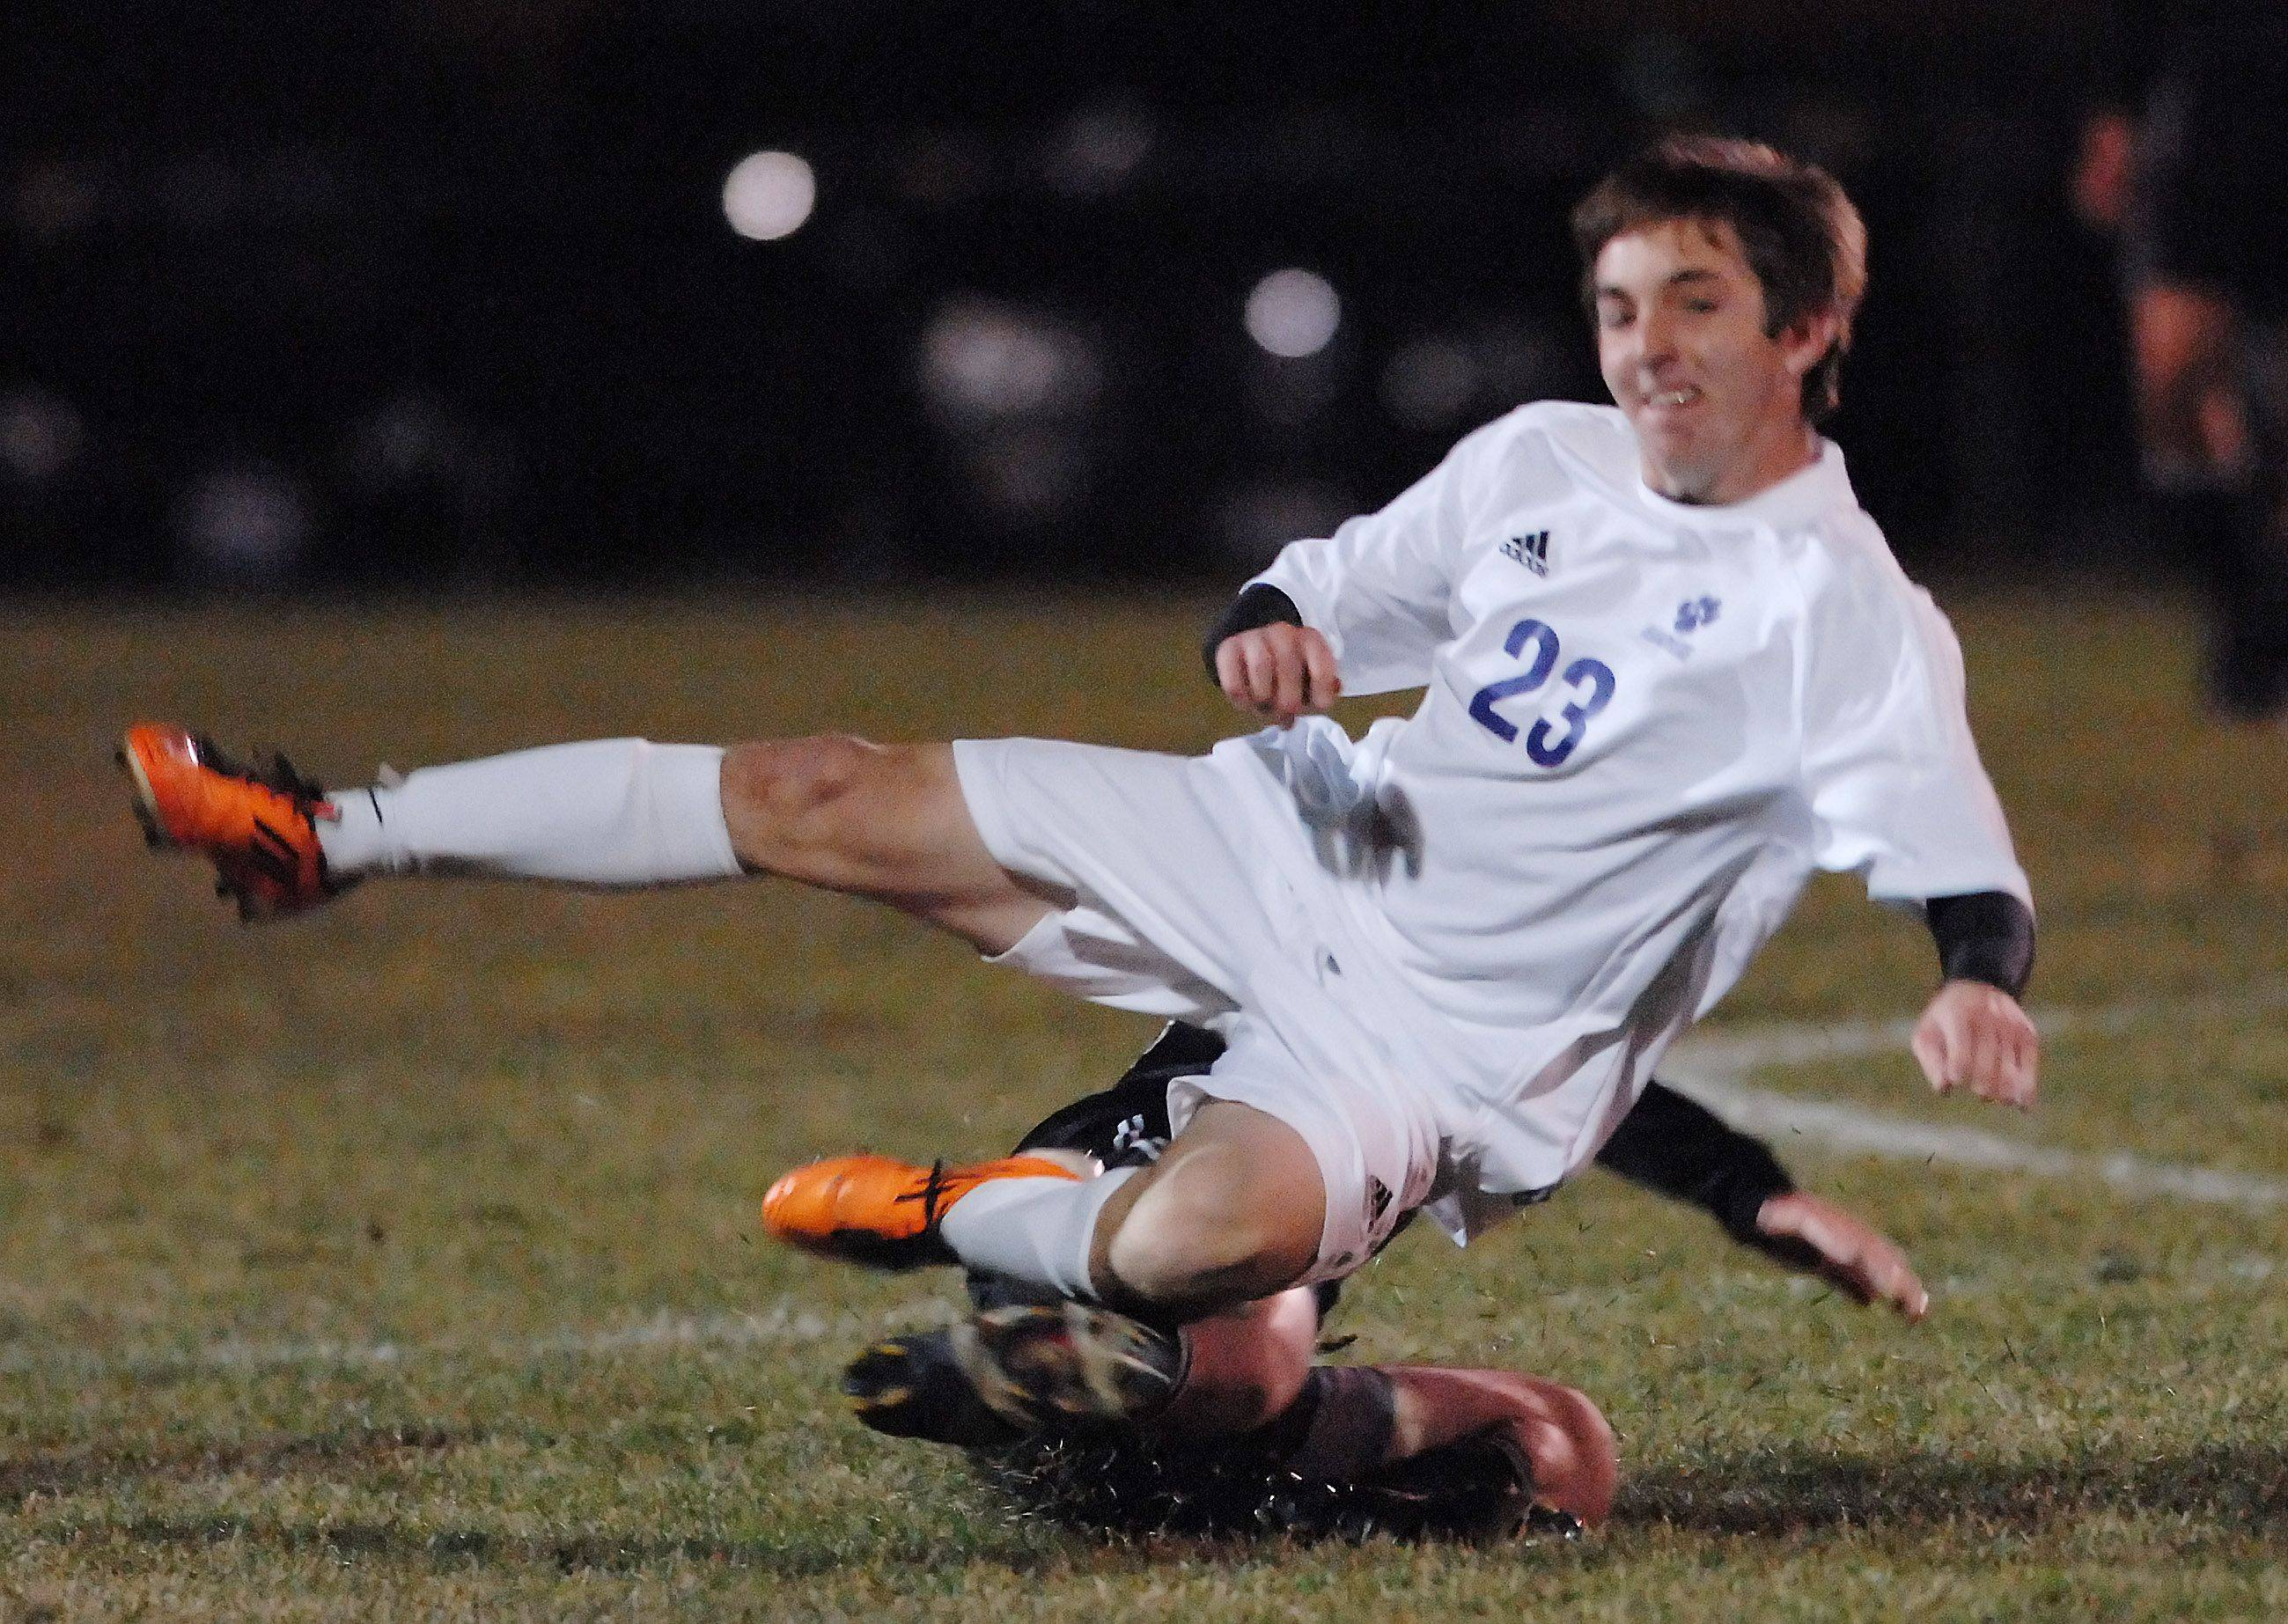 Hampshire's Zack Suthers is taken down by Prairie Ridge's Sam Liscovitz in the Hampshire regional game Tuesday.